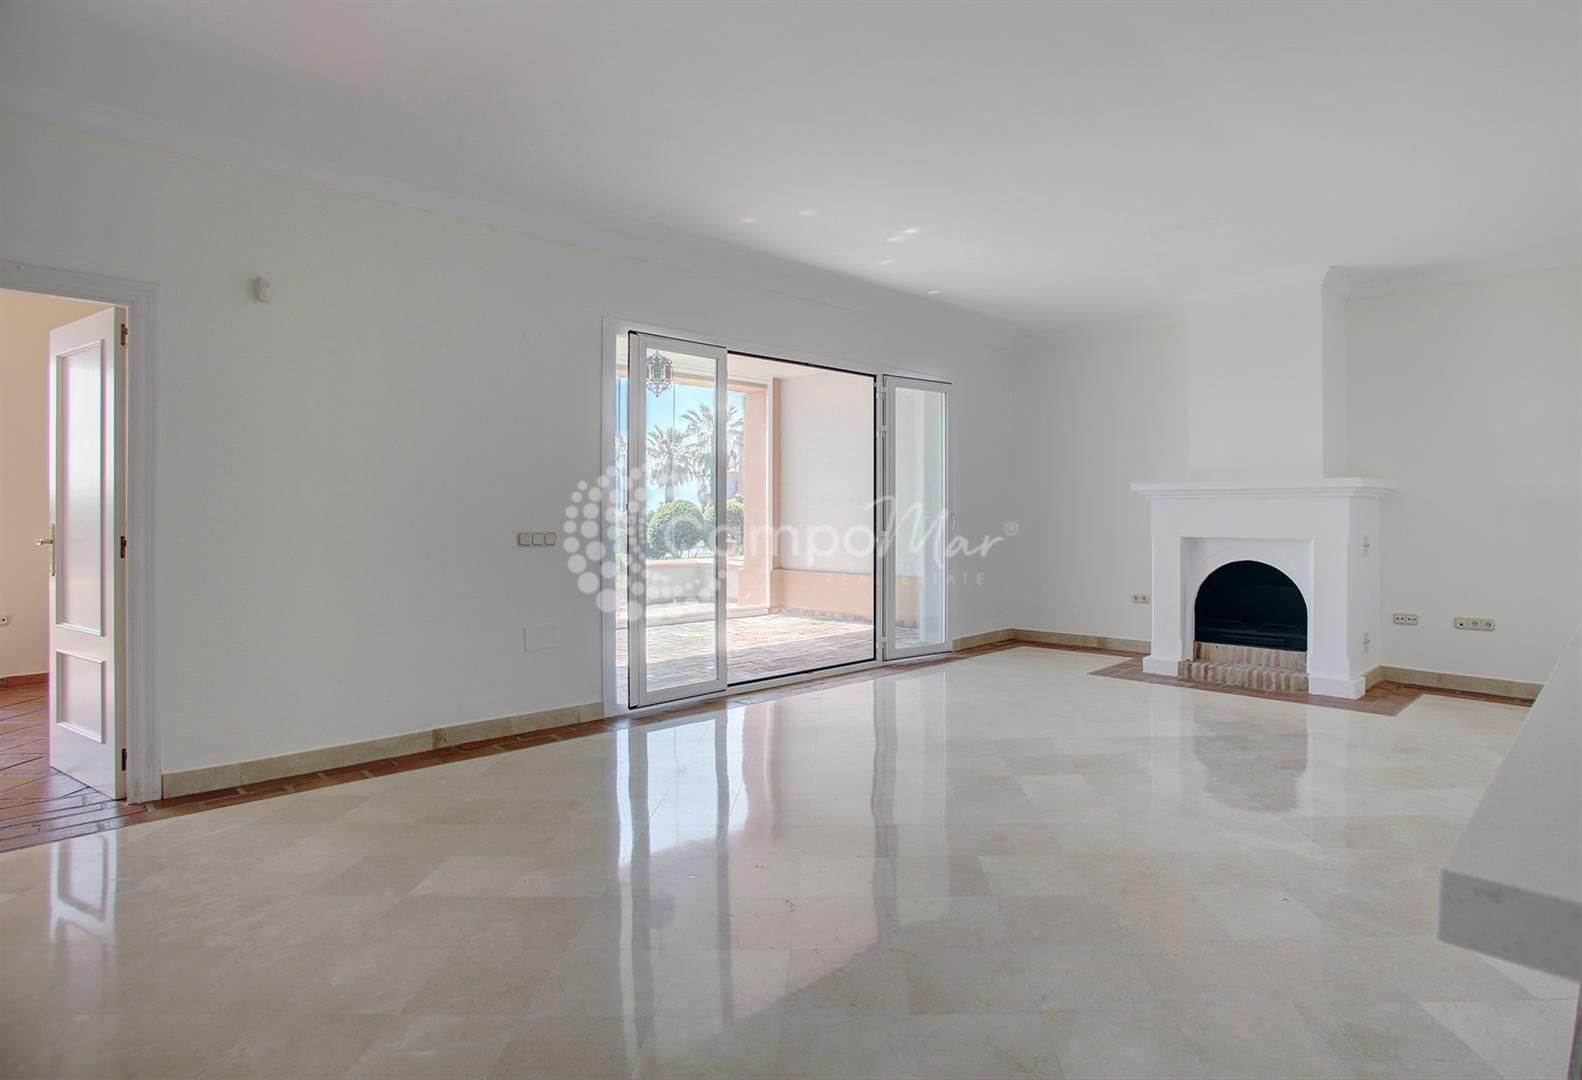 Ground Floor Apartment in La Perla de la Bahía, Casares